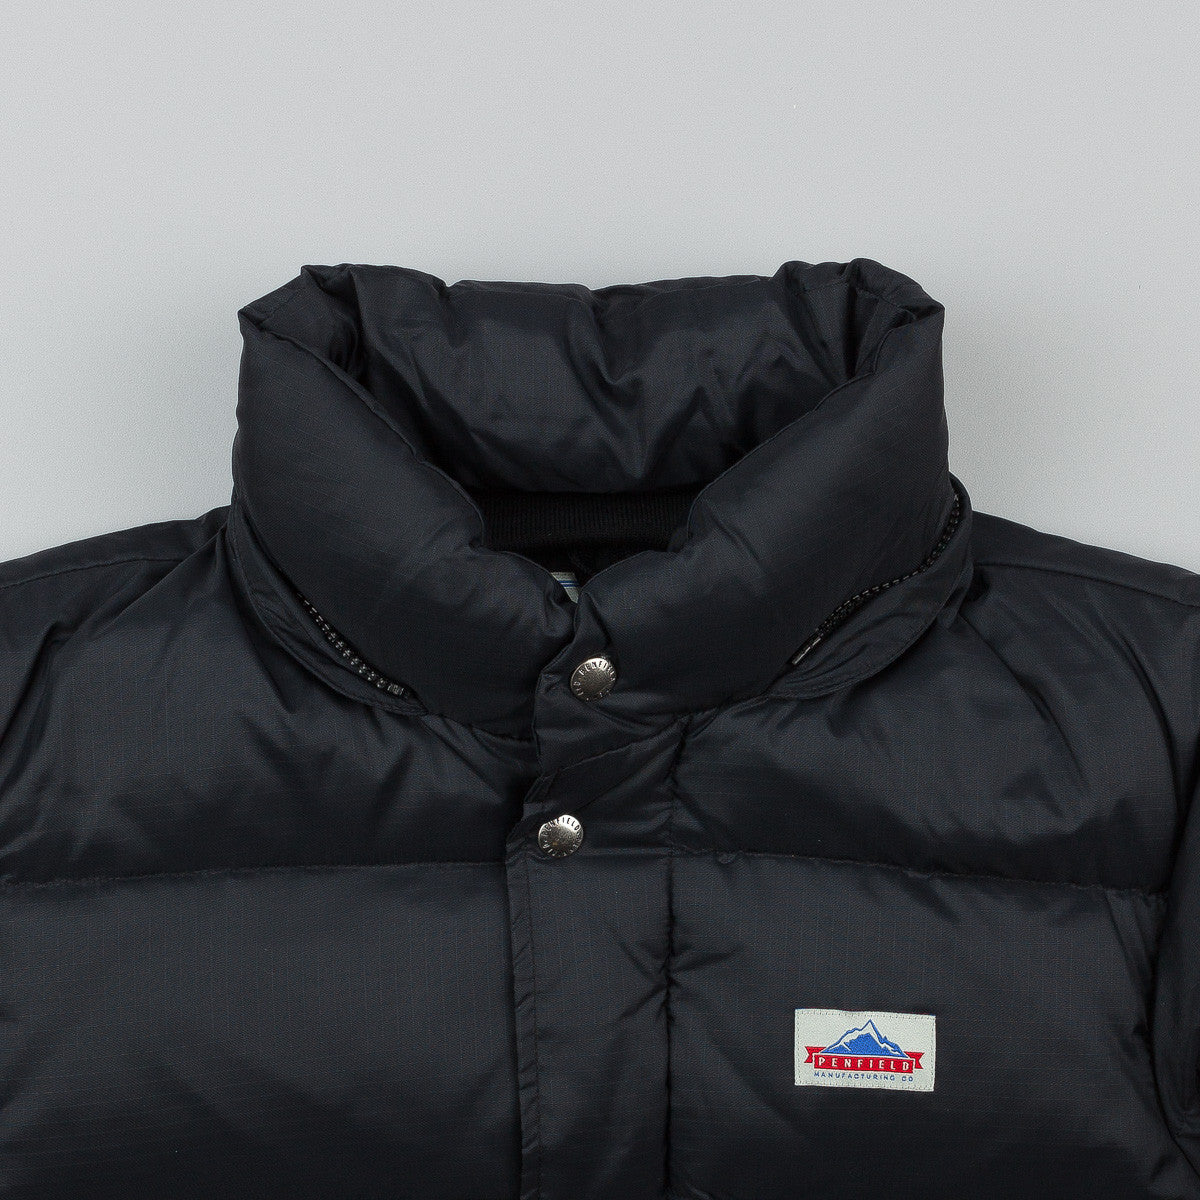 Penfield Bowerbridge Insulated Down Jacket - Black